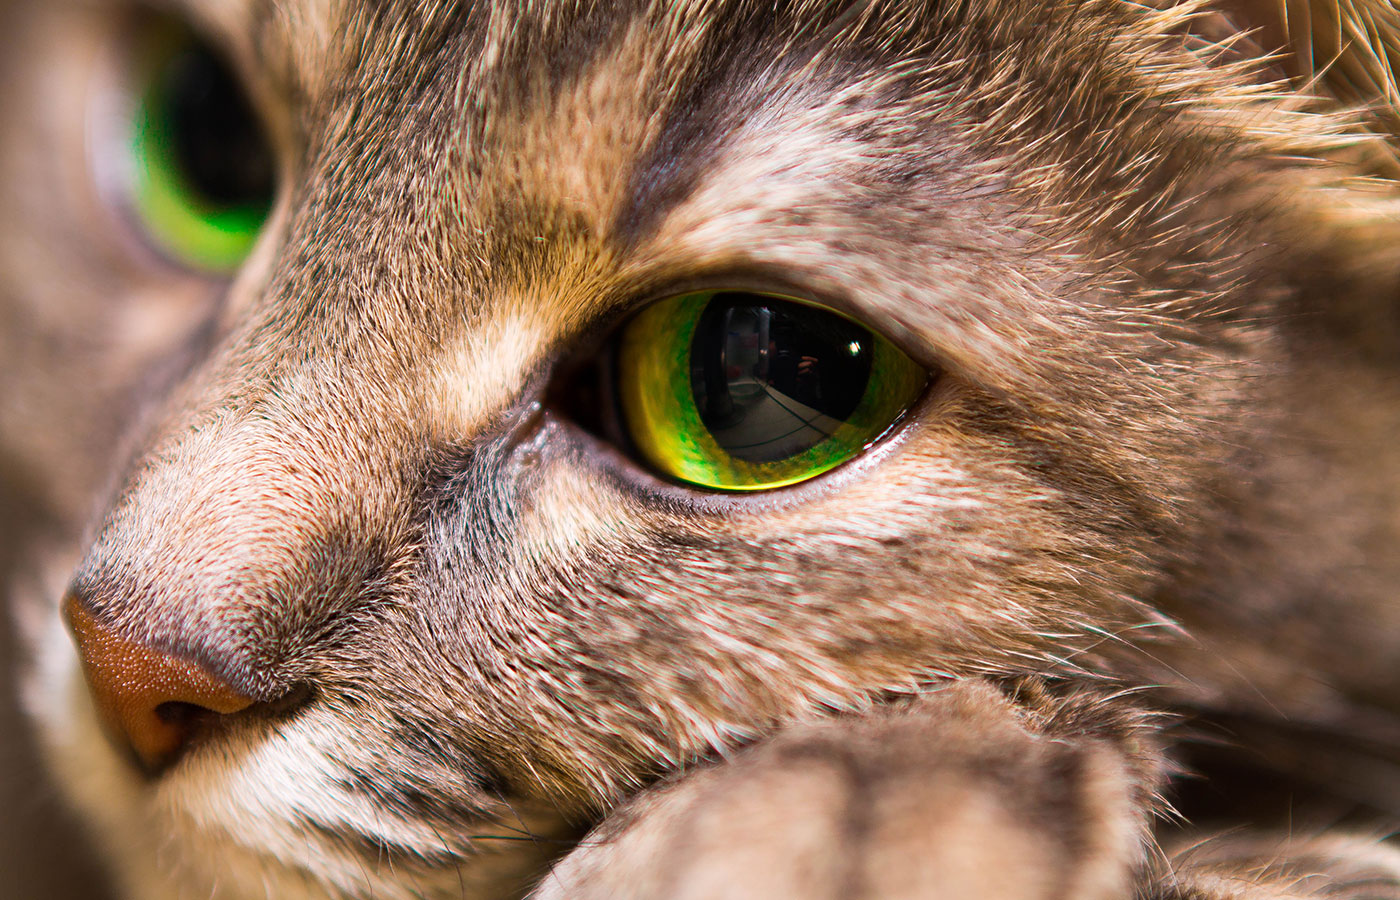 Portrait of a kind cat with big eyes, close up